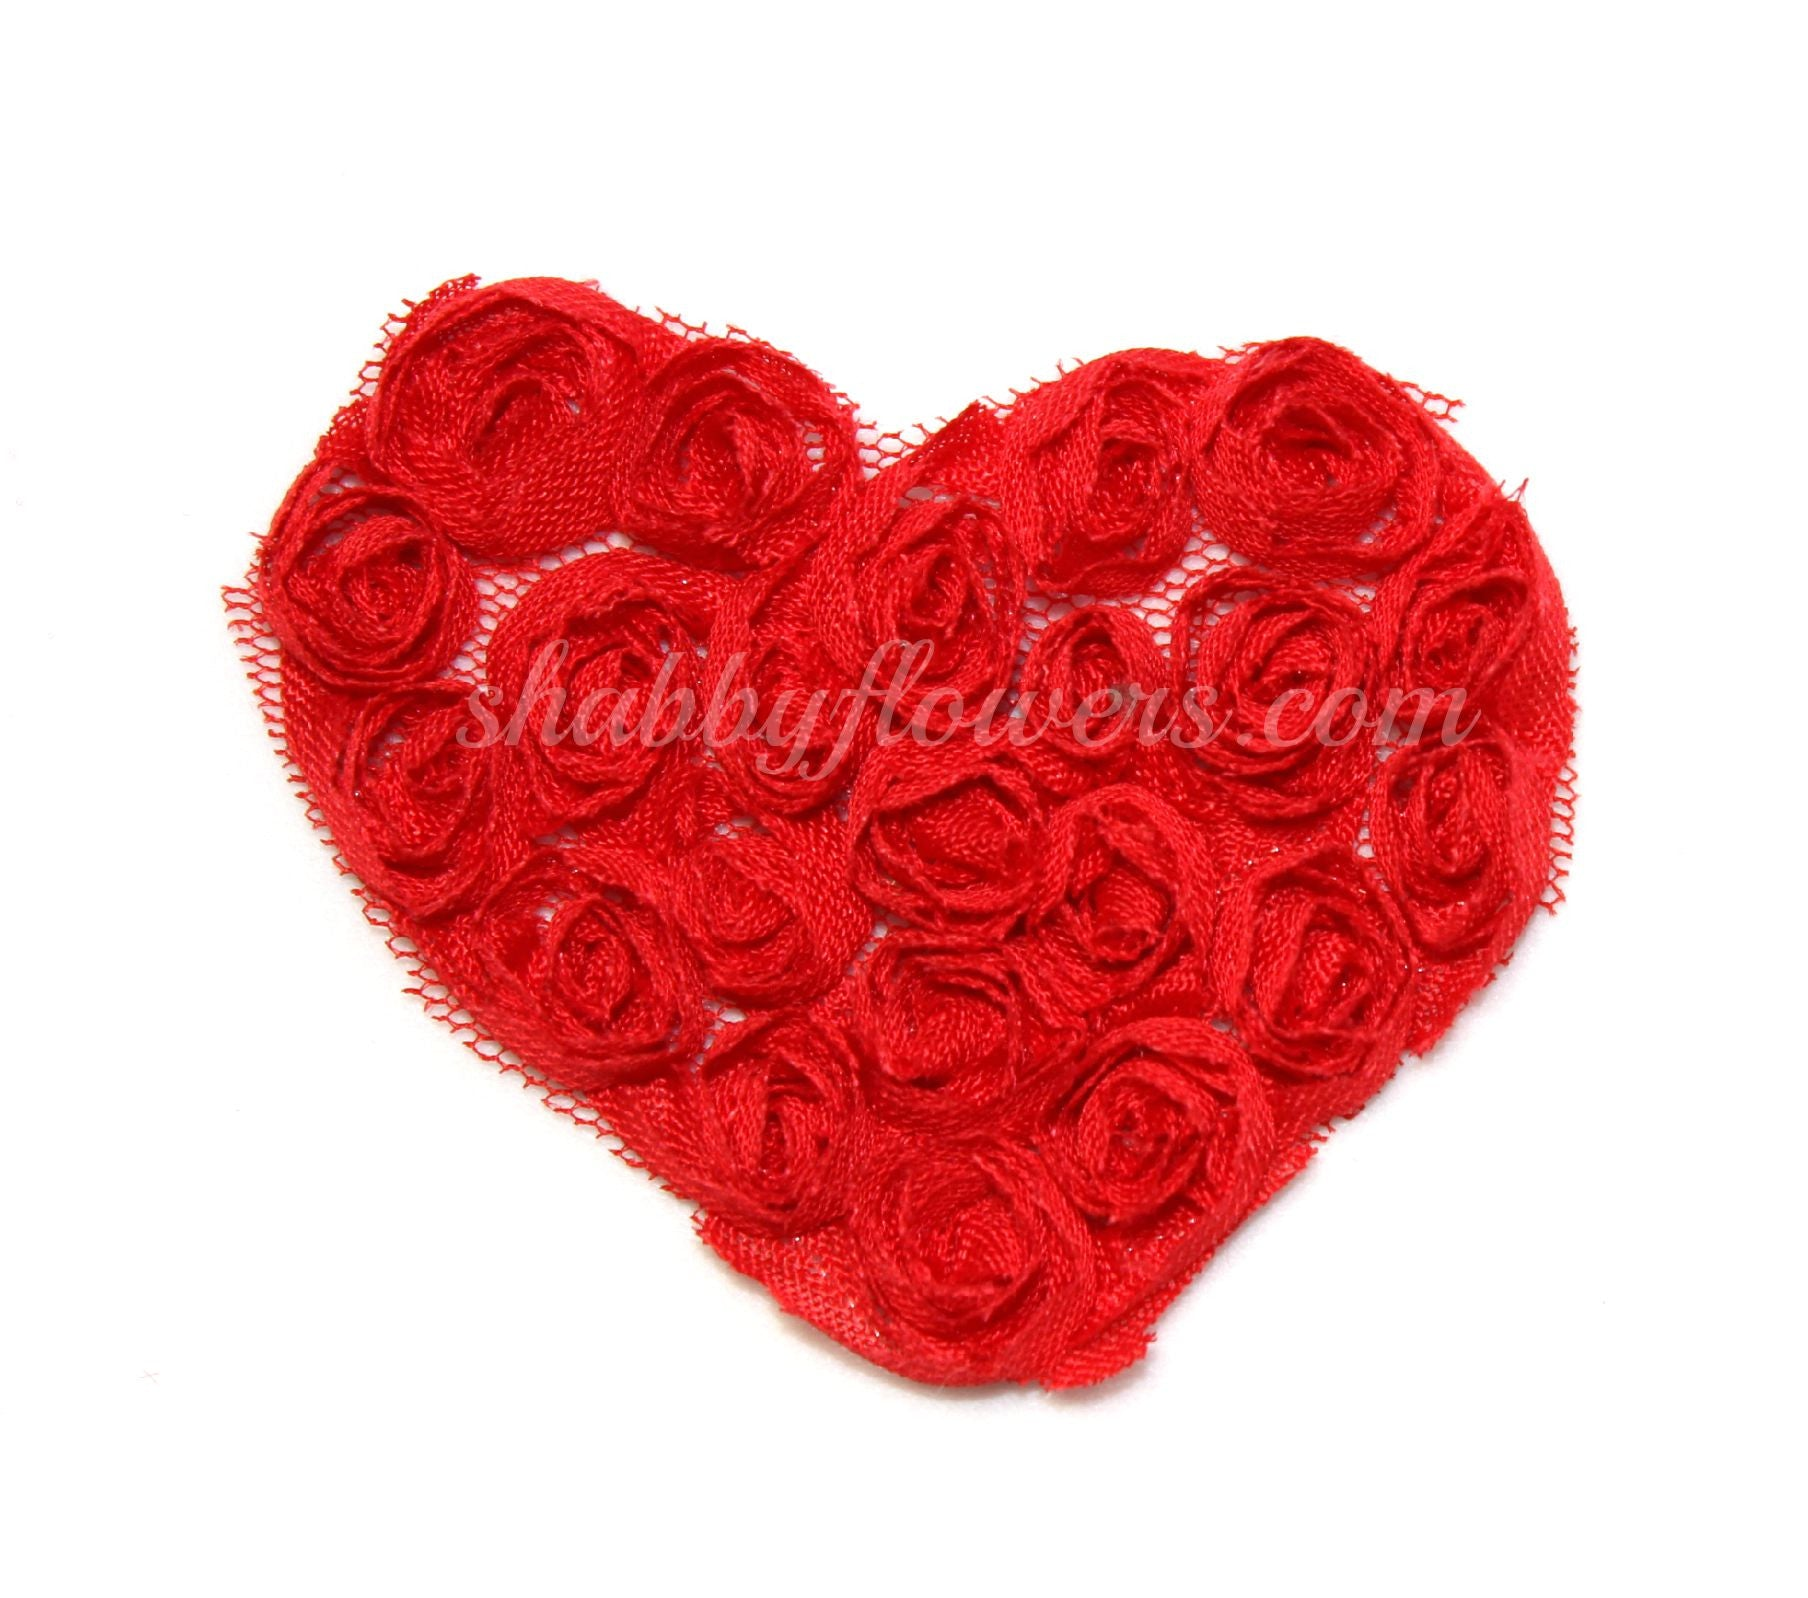 Small Shabby Heart - Red - shabbyflowers.com